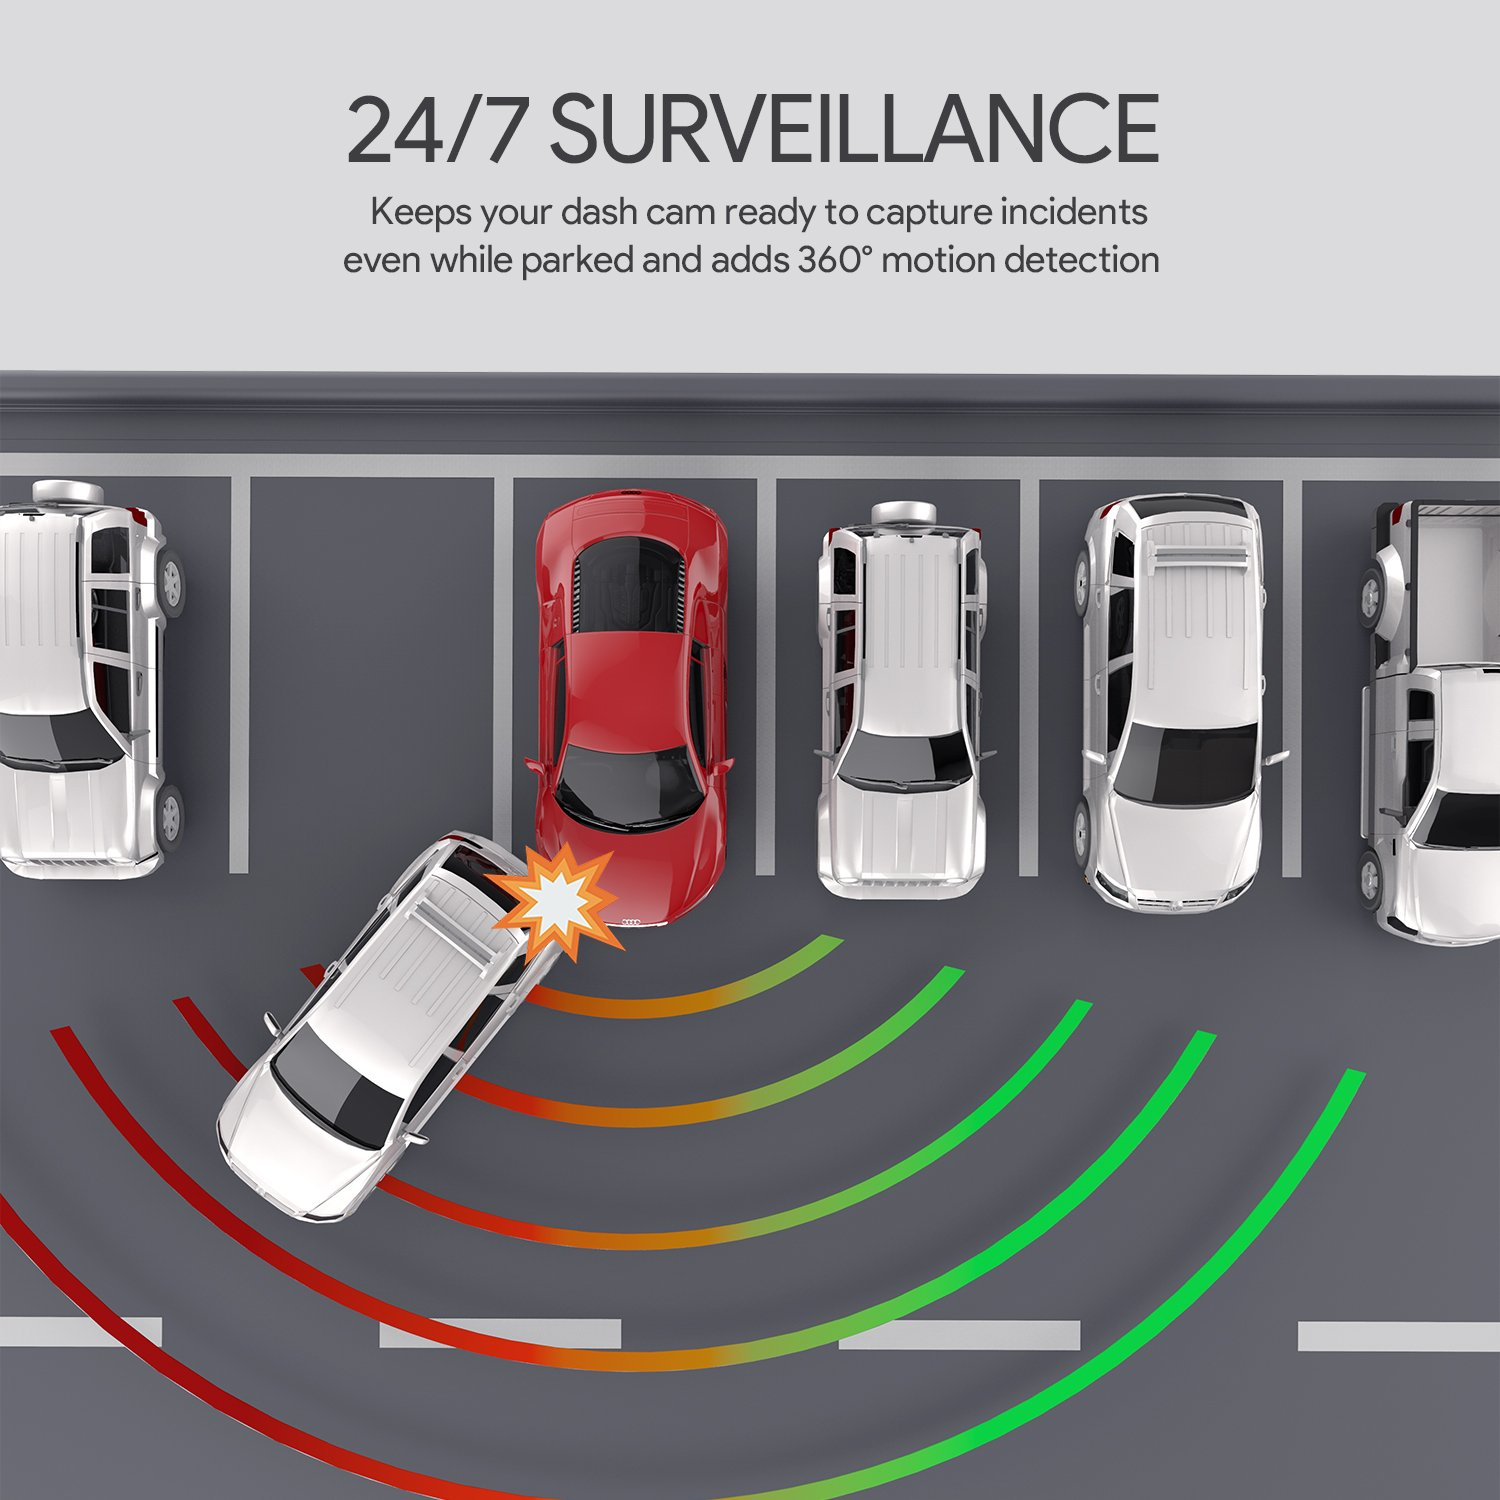 and More DR03 /& DR02 D Dual Dash Cameras DR02 J Dashboard Camera Hardwire Kit for DR01 AUKEY Dash Cam Hardwire Kit with Motion Detection Sensor DR02 DRA1